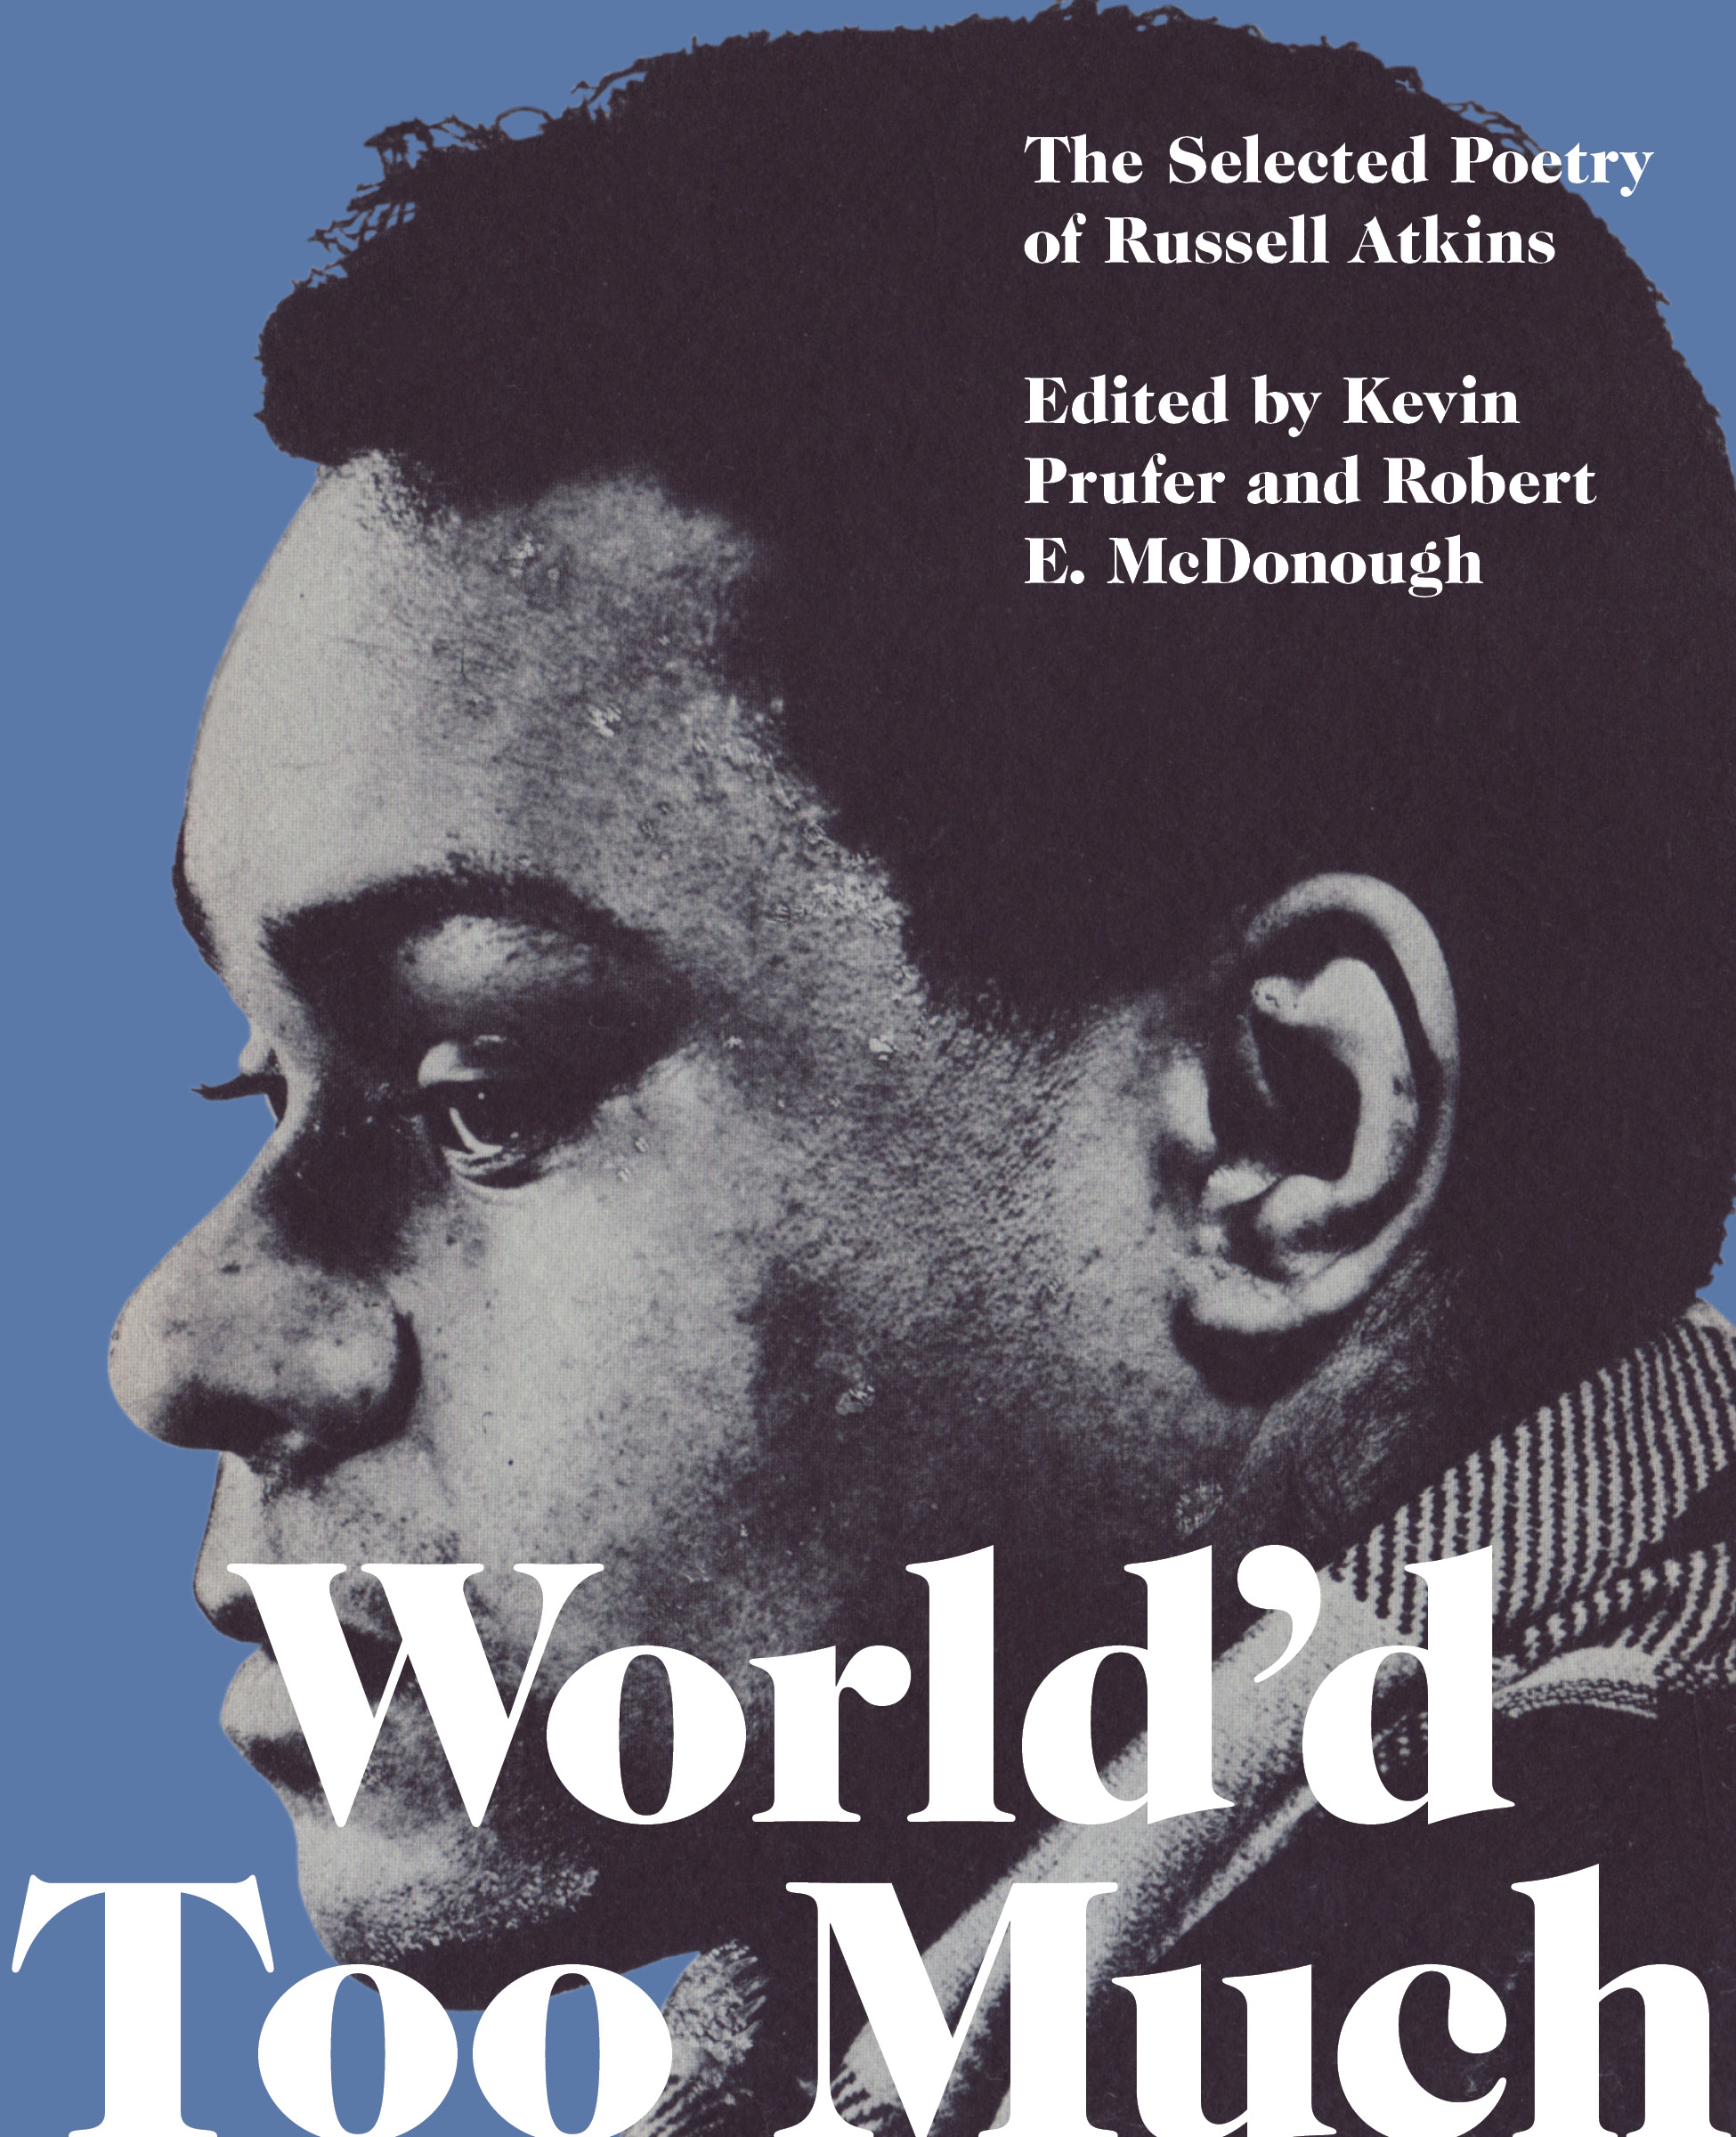 World'd Too Much: The Poetry of Russell Atkins